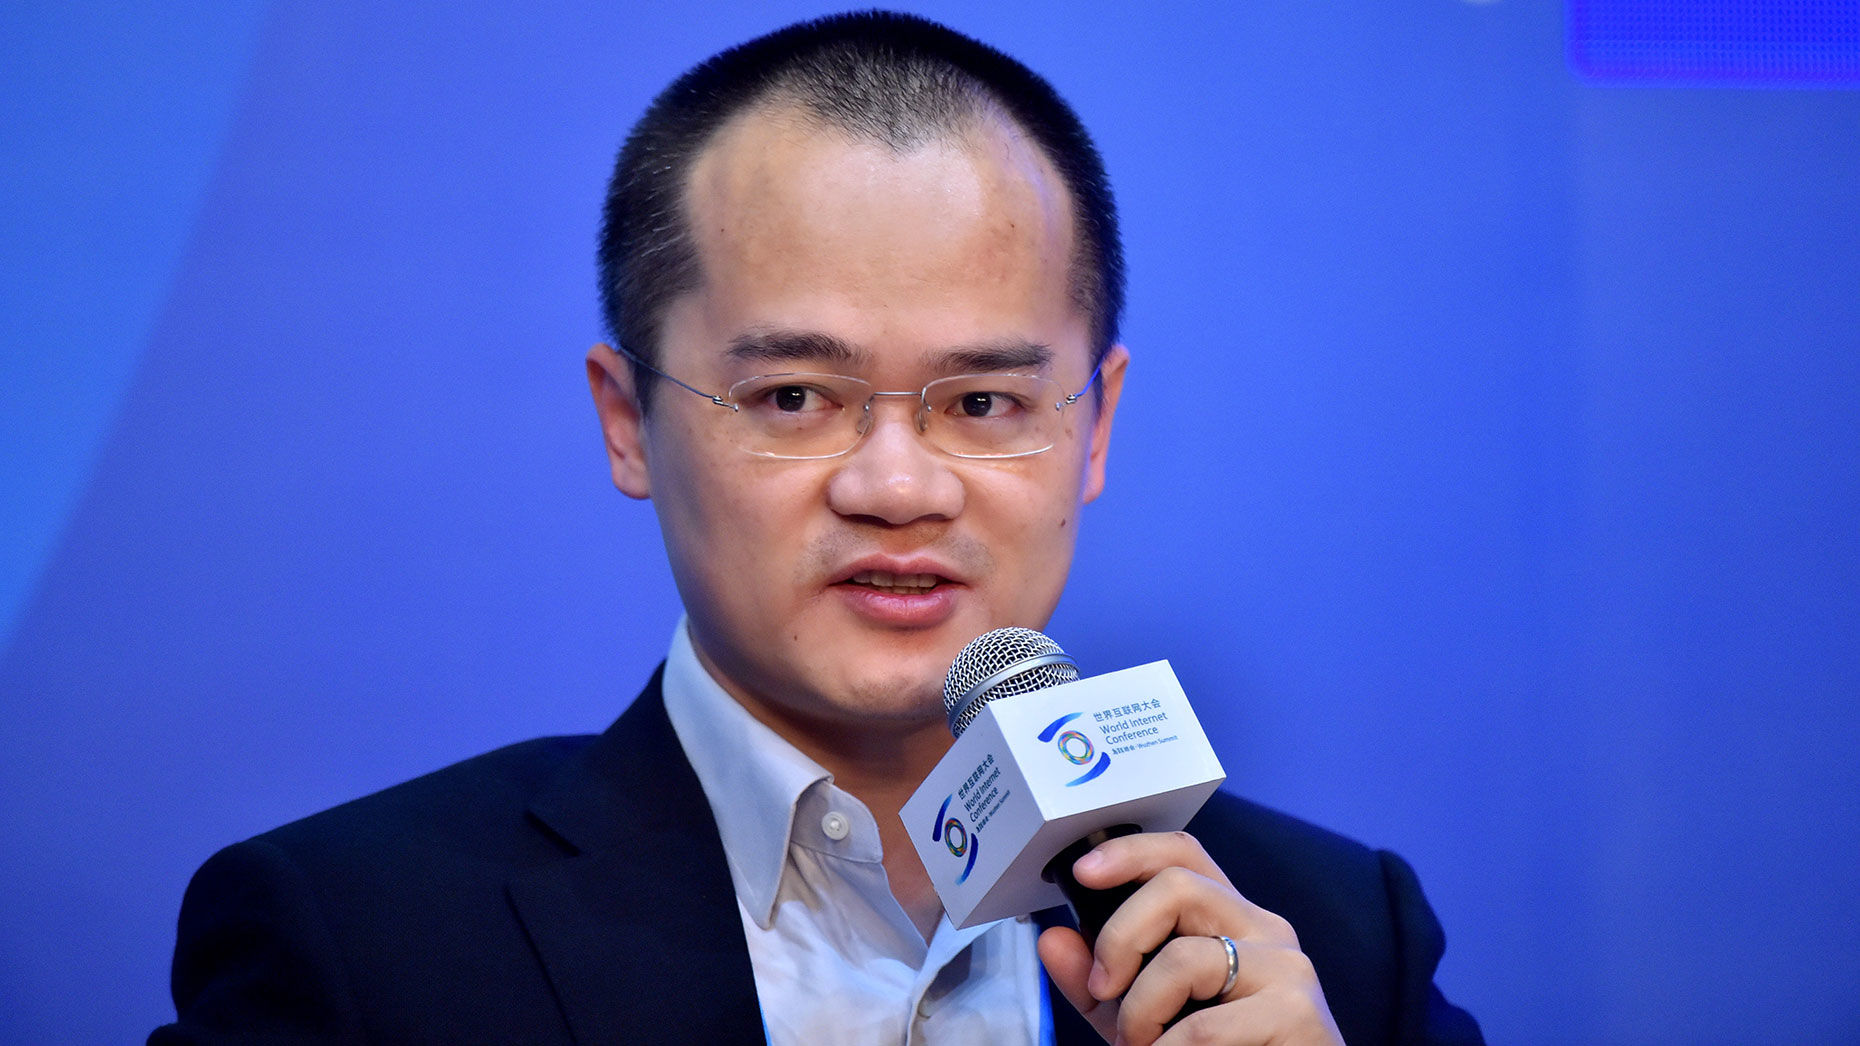 Meituan founder Wang Xing. Photo: AP